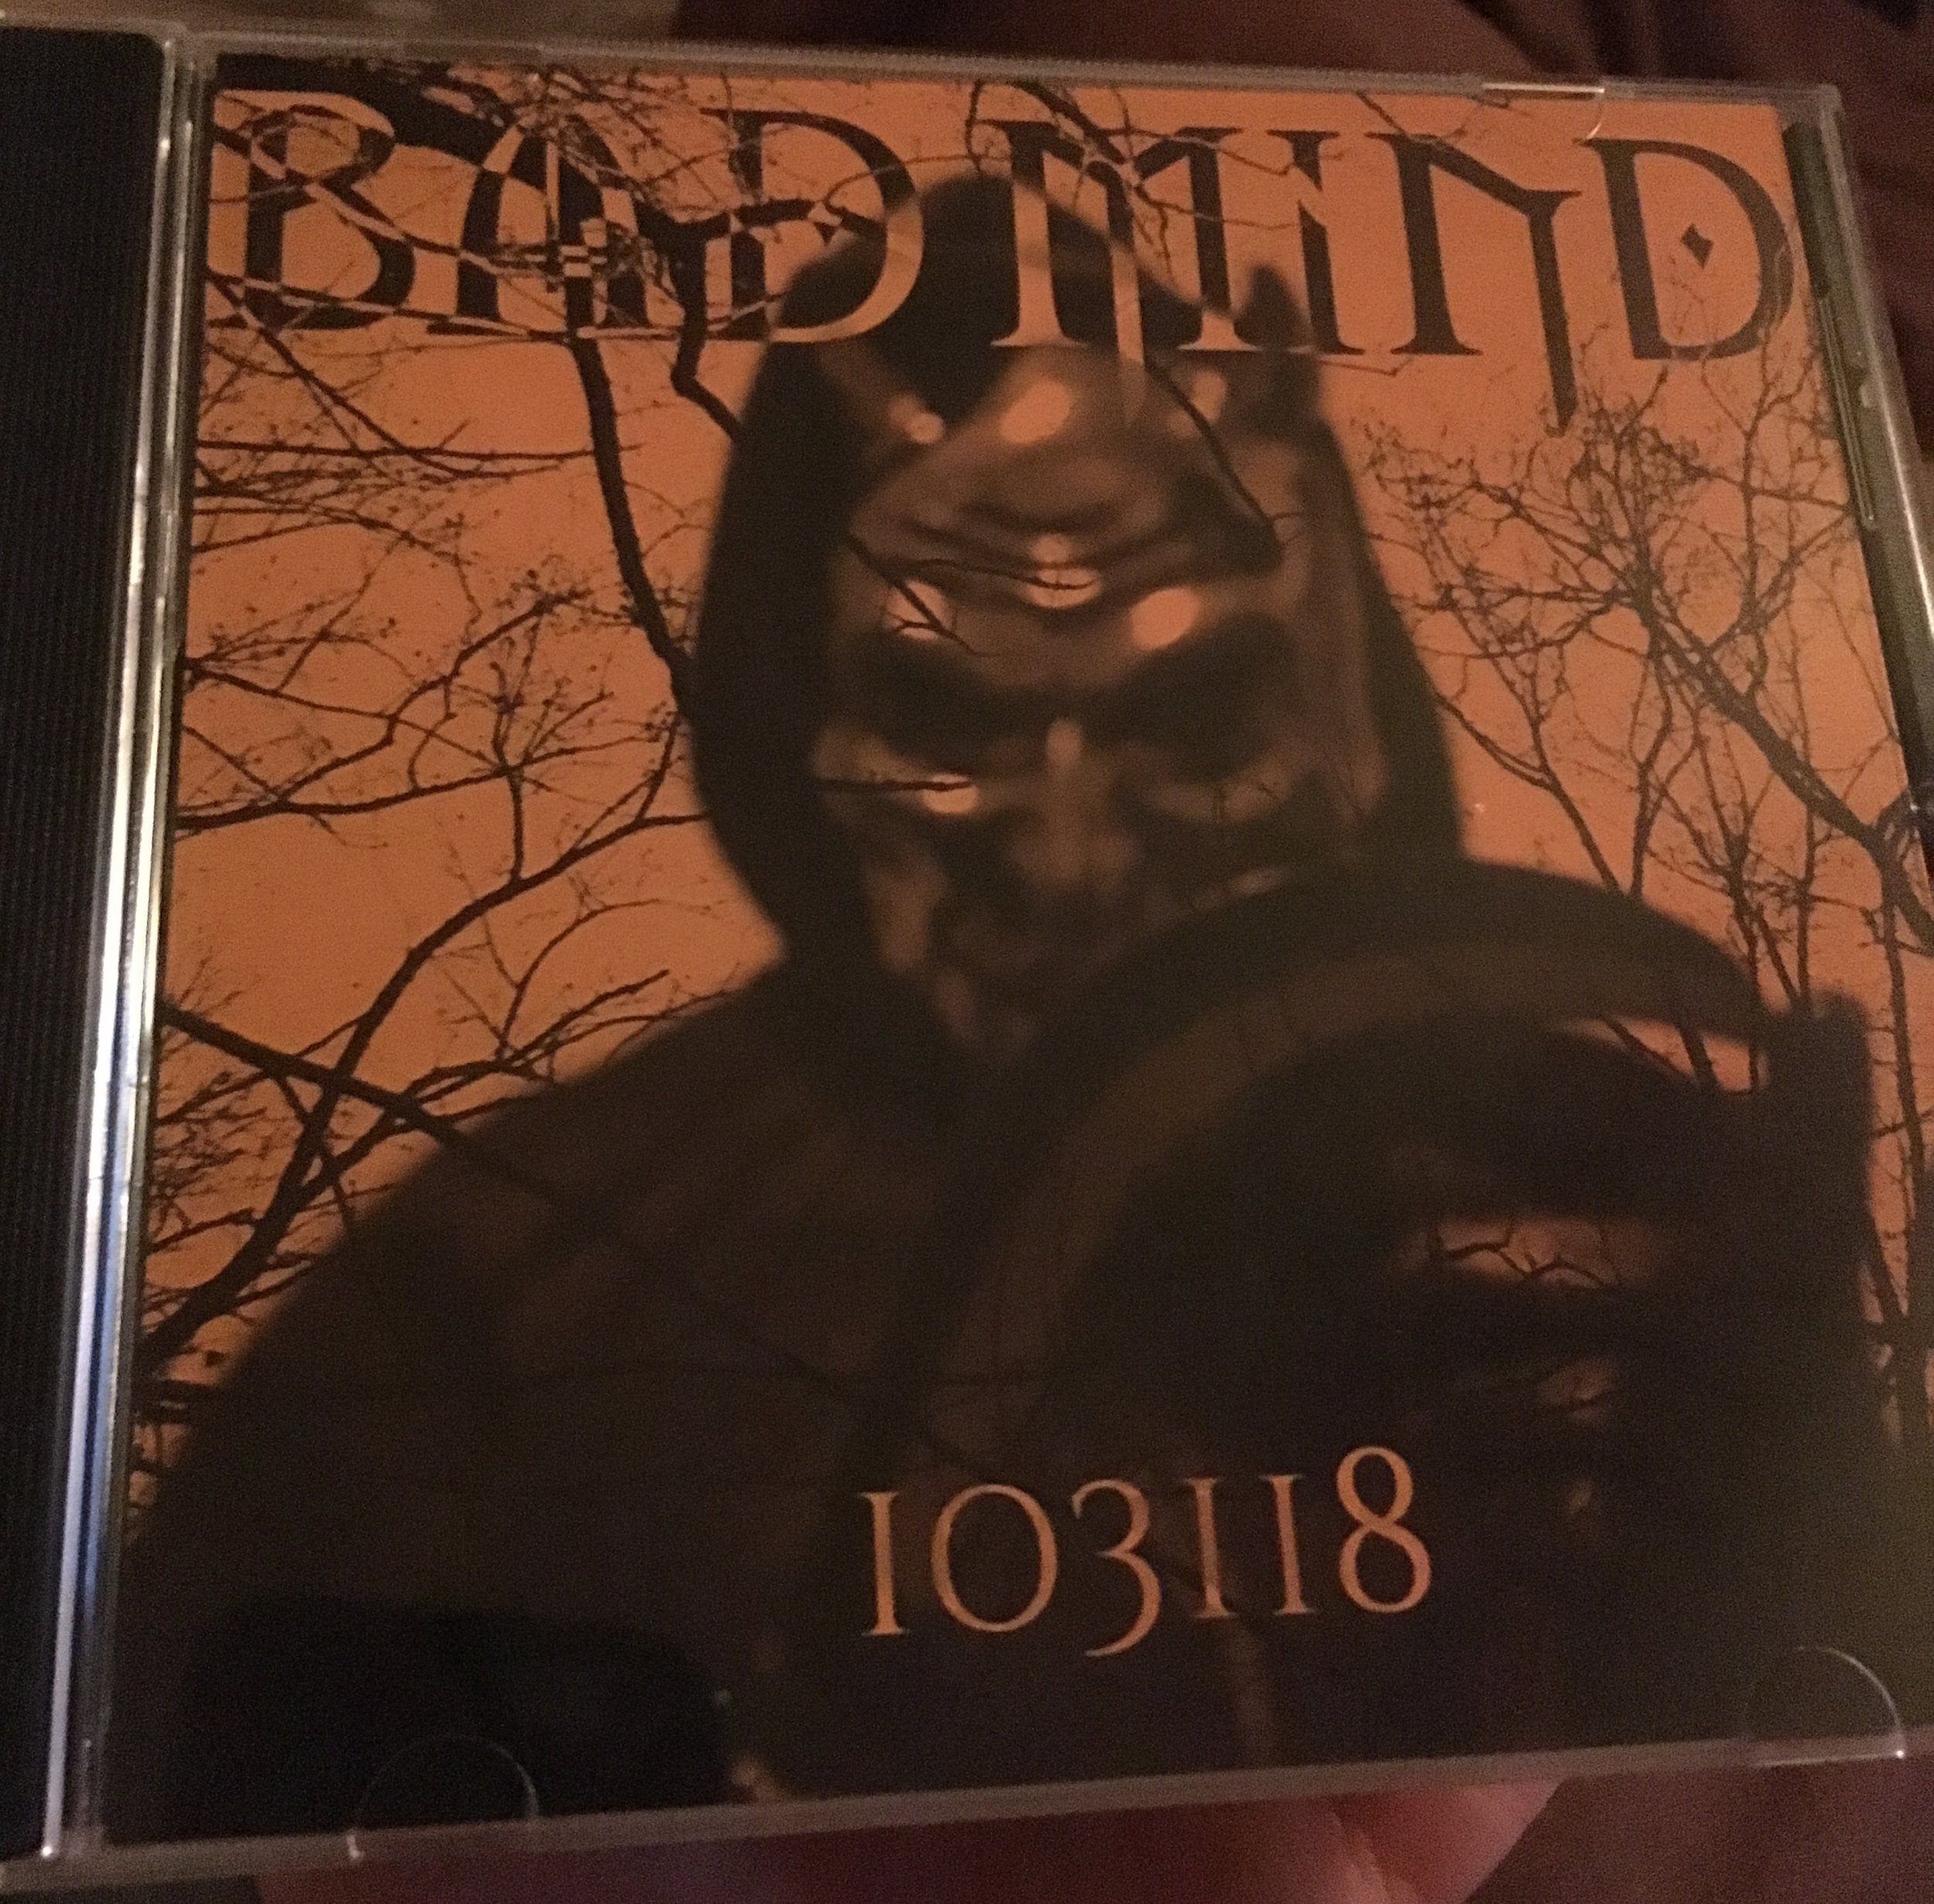 Compact Bad 103118 Now Available On Compact Disc Remix Free Dl Bad Mind